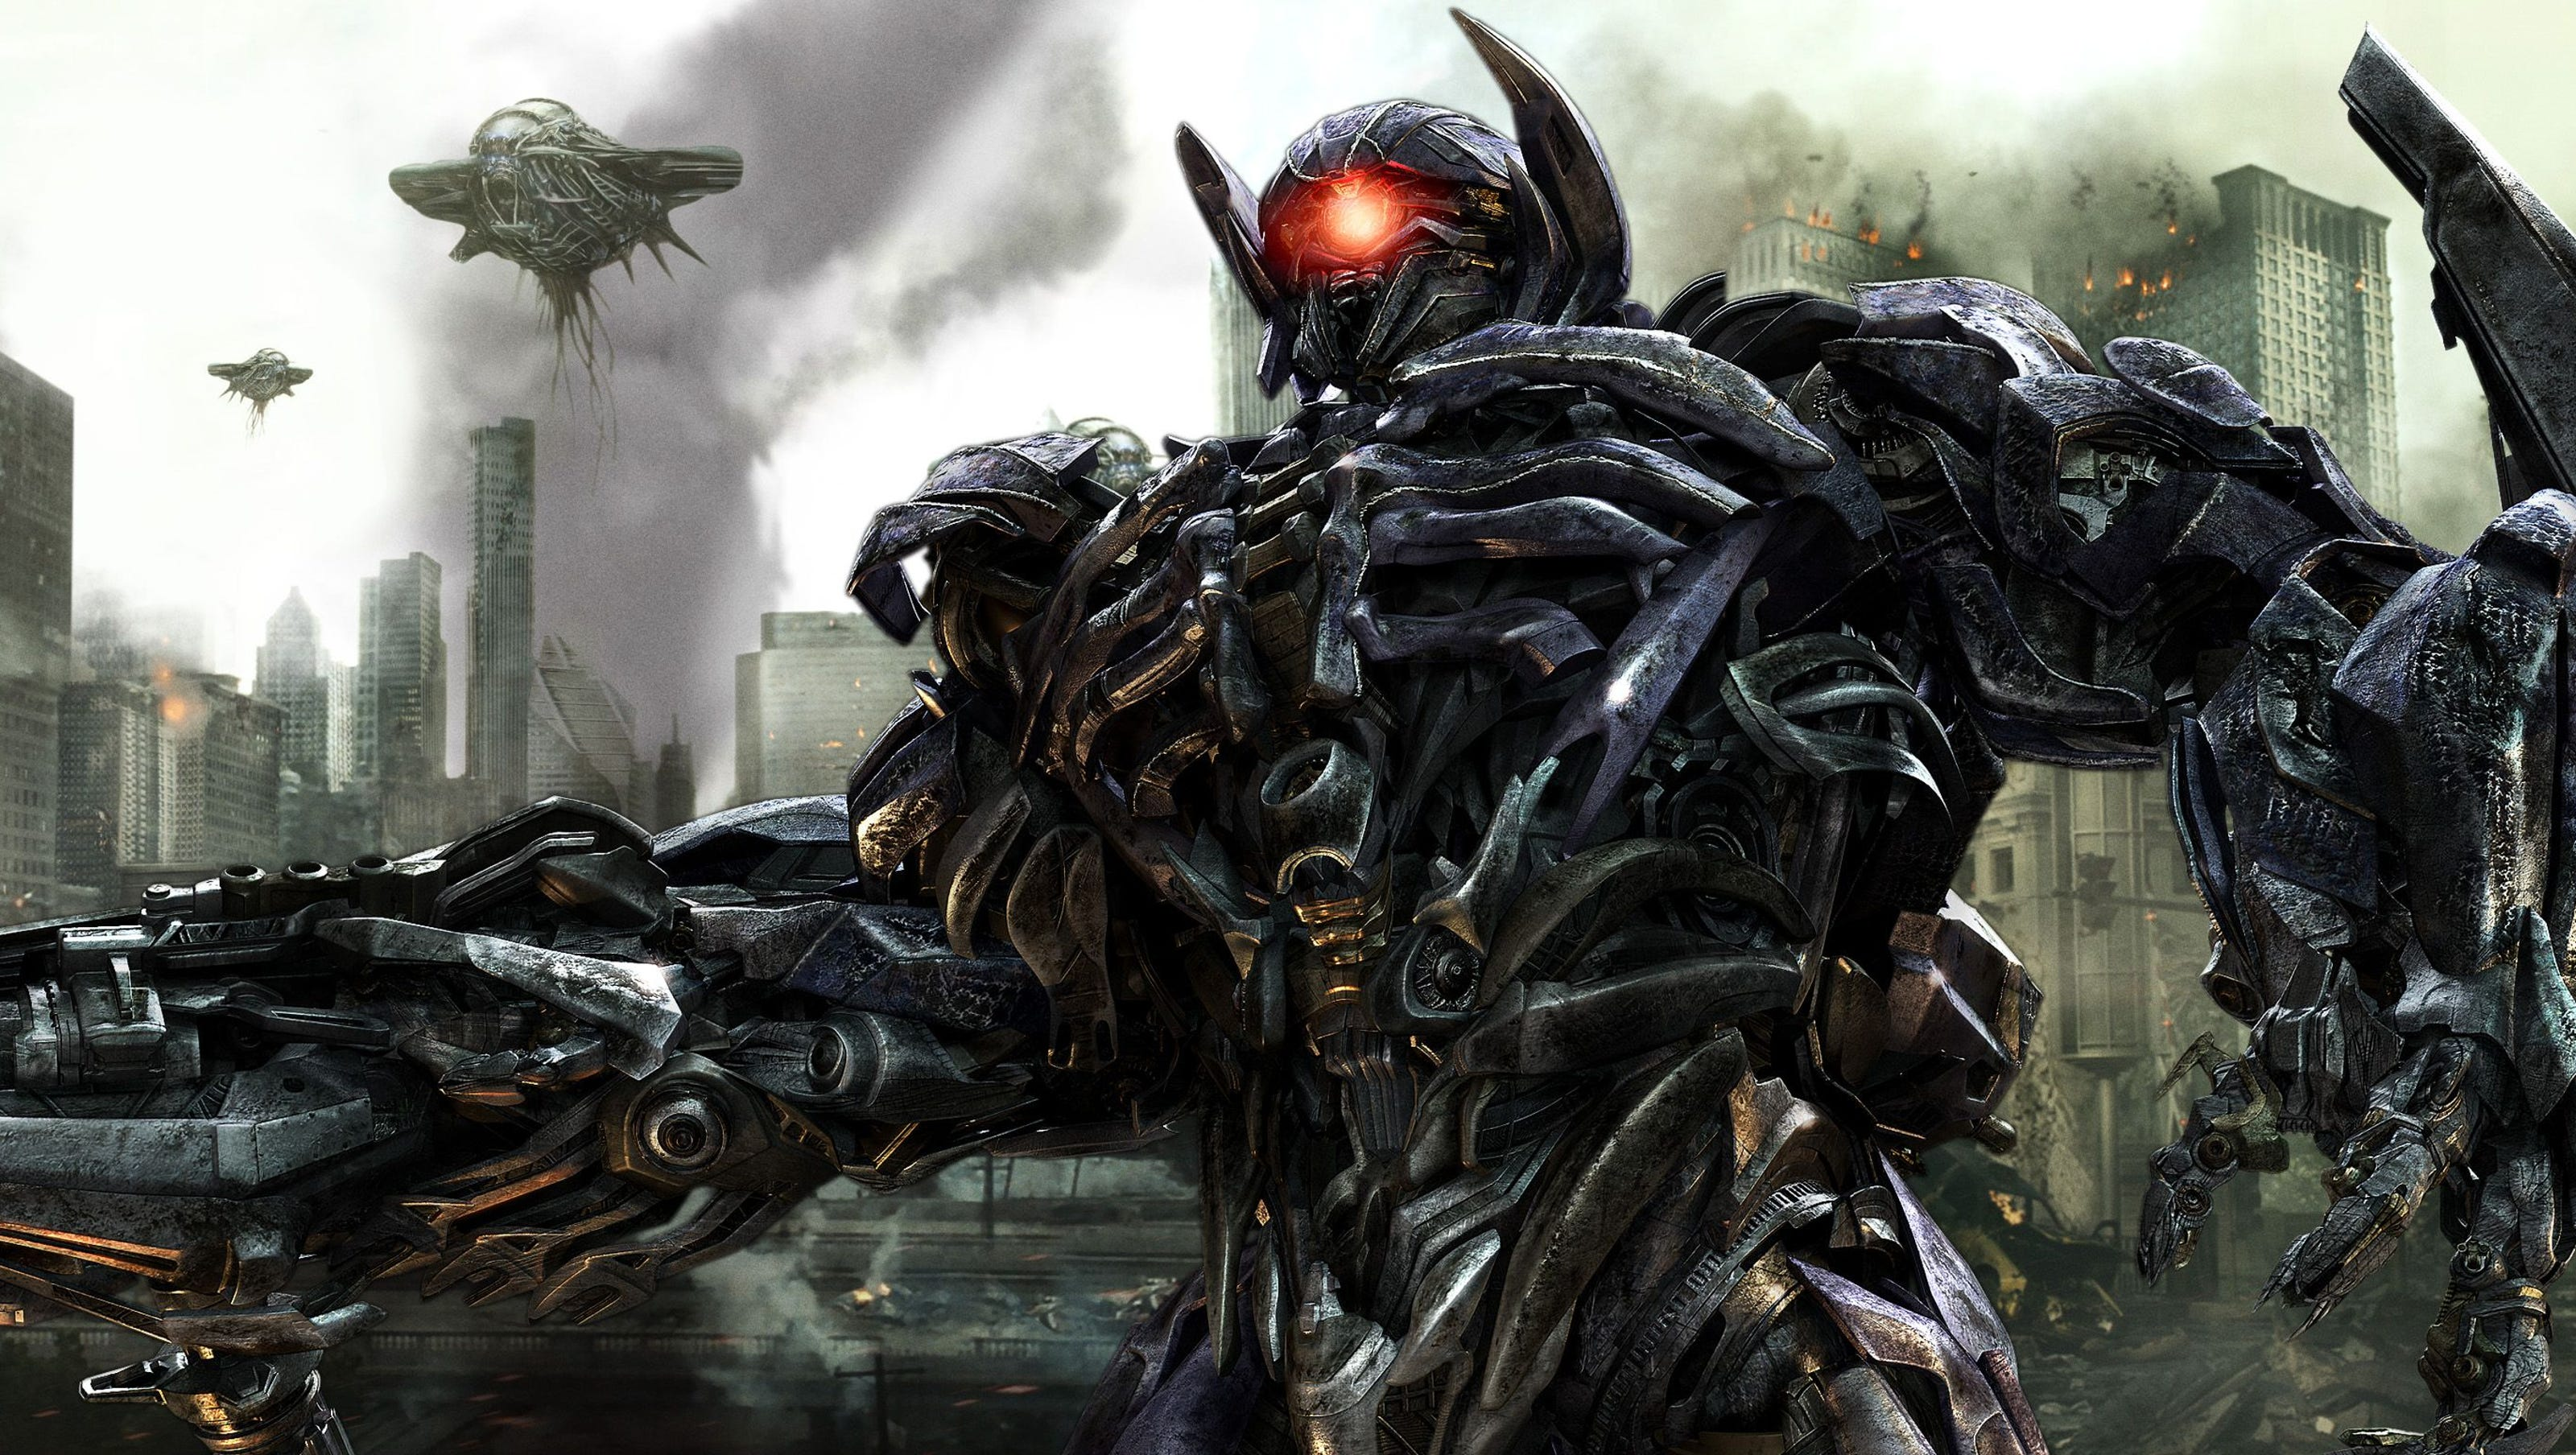 transformers': all six movies (including 'last knight'), ranked